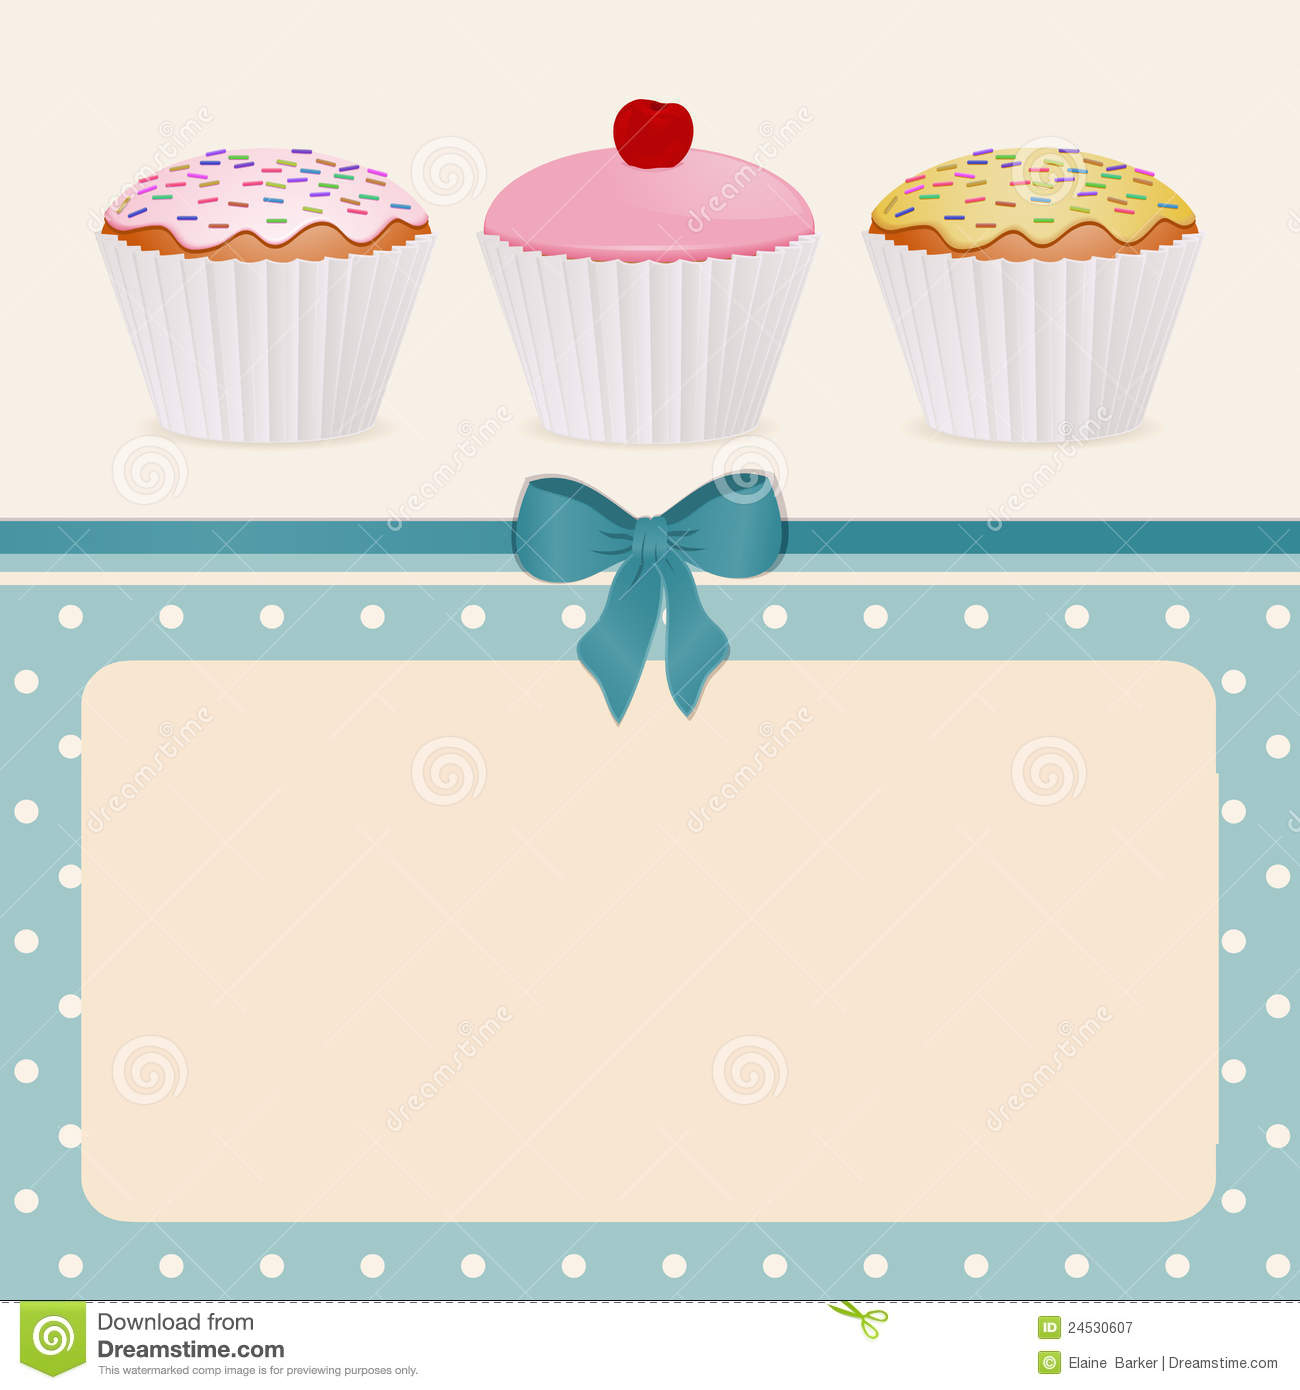 Cupcakes On Blue Polka Dot Background Stock Illustration.